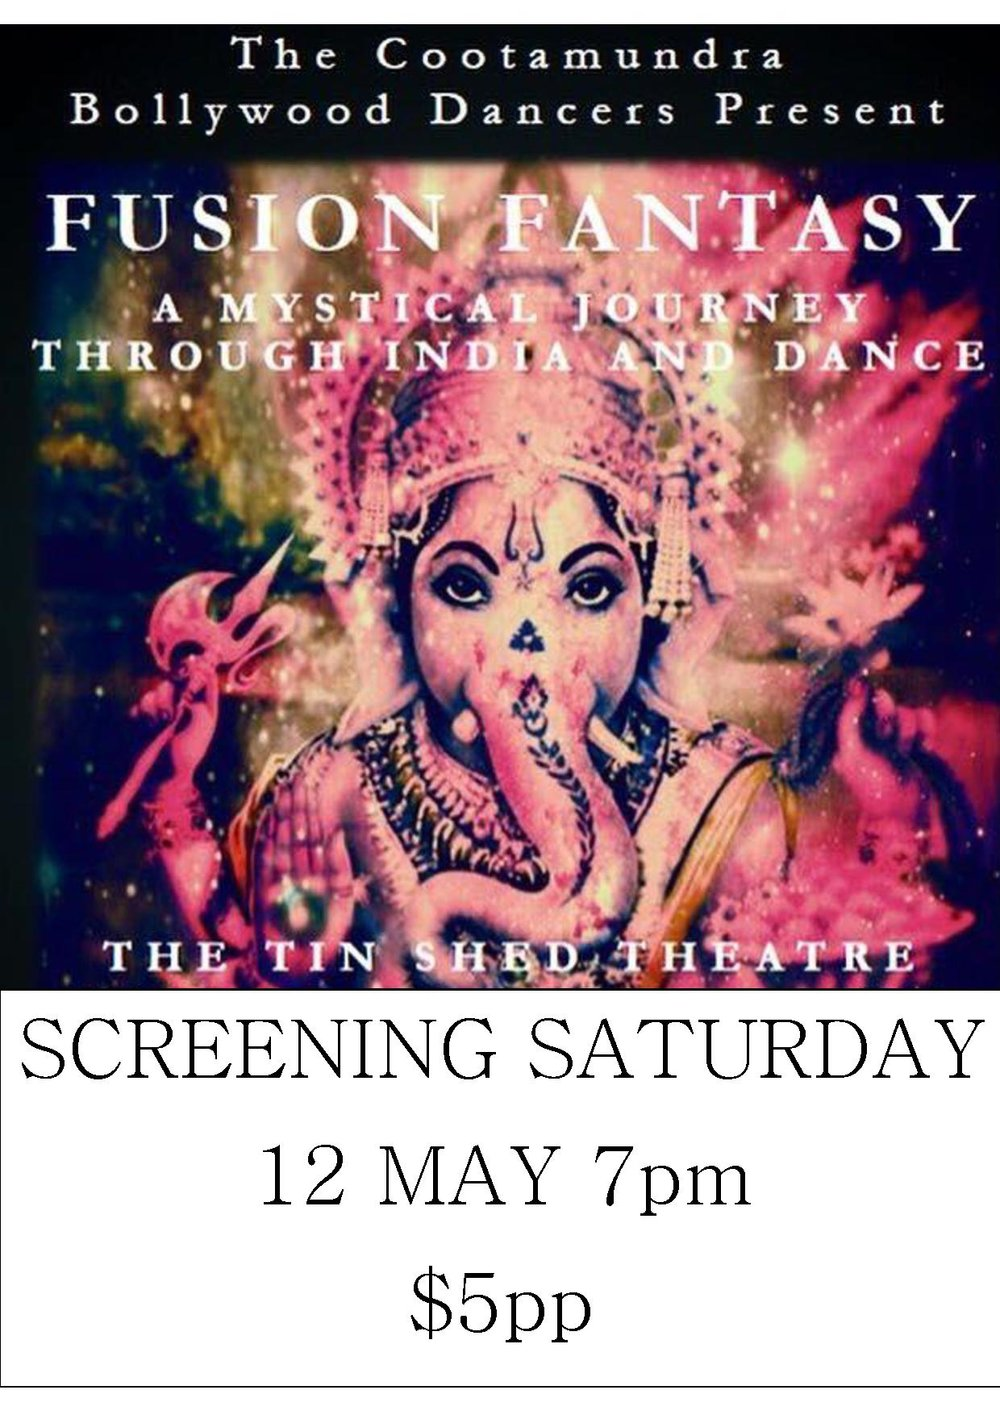 Fusion Fantasy screening 12.5.18 7pm.jpg